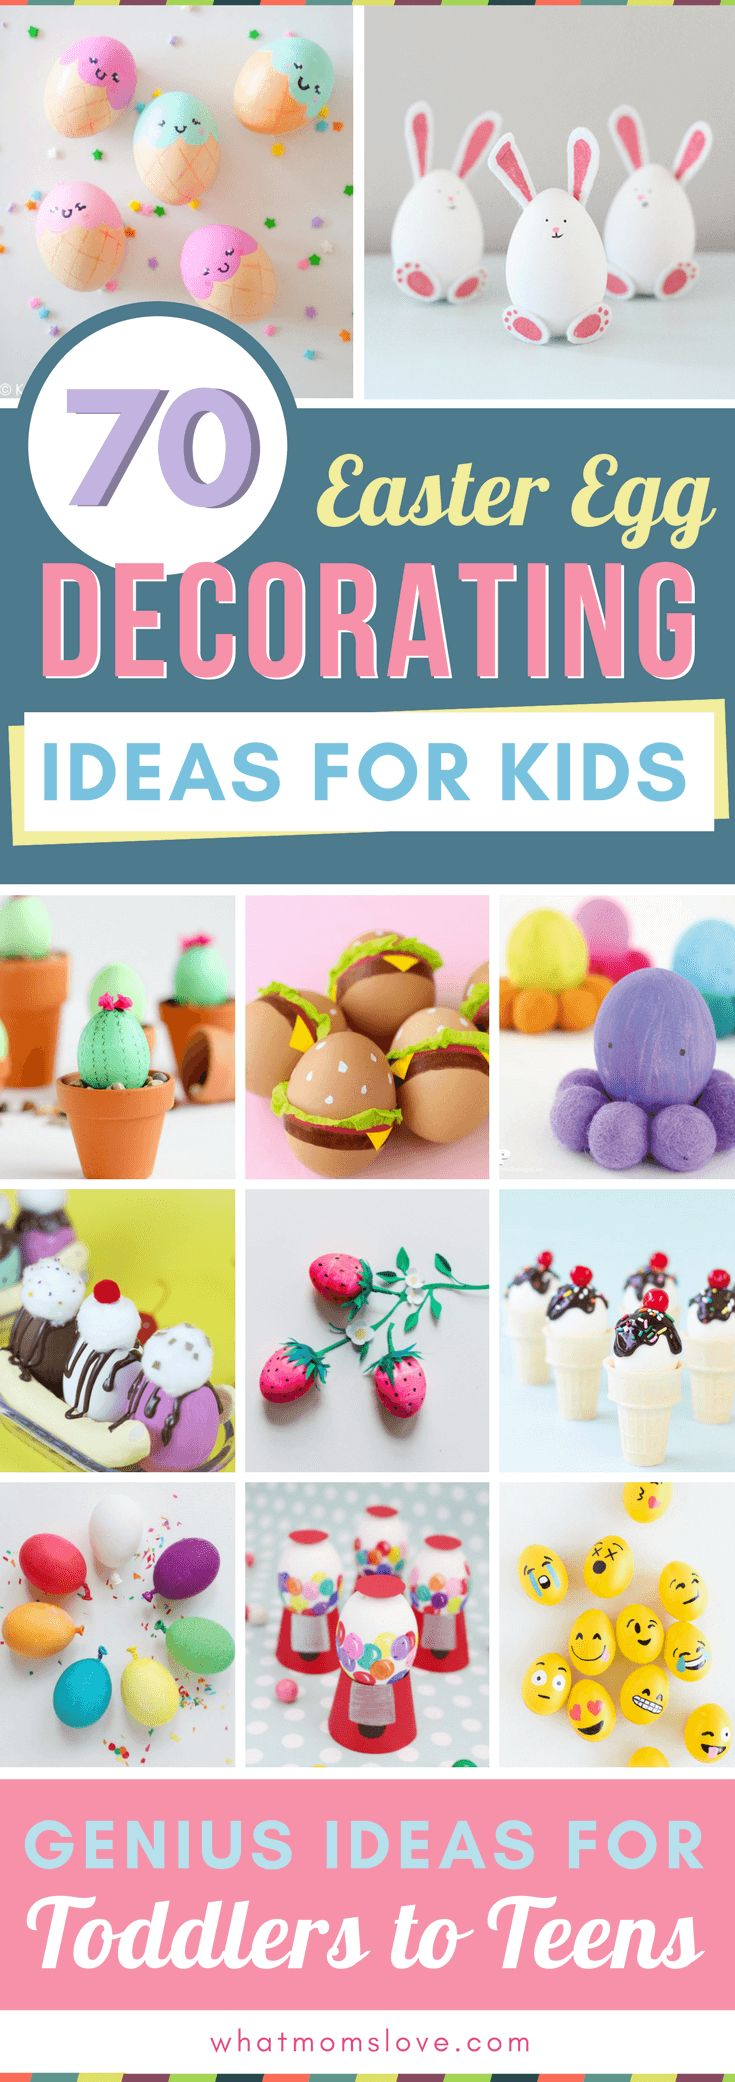 Easter Egg Decorating Ideas for Kids   Creative DIY ways to decorate your eggs - perfect for all children from toddlers to teens (or even adults!). Fun ideas for how to make awesome eggs using supplies like shaving cream, food coloring, paper, dye-free and free printables. Simple to do at home and awesome to display in your easter baskets! via @whatmomslove